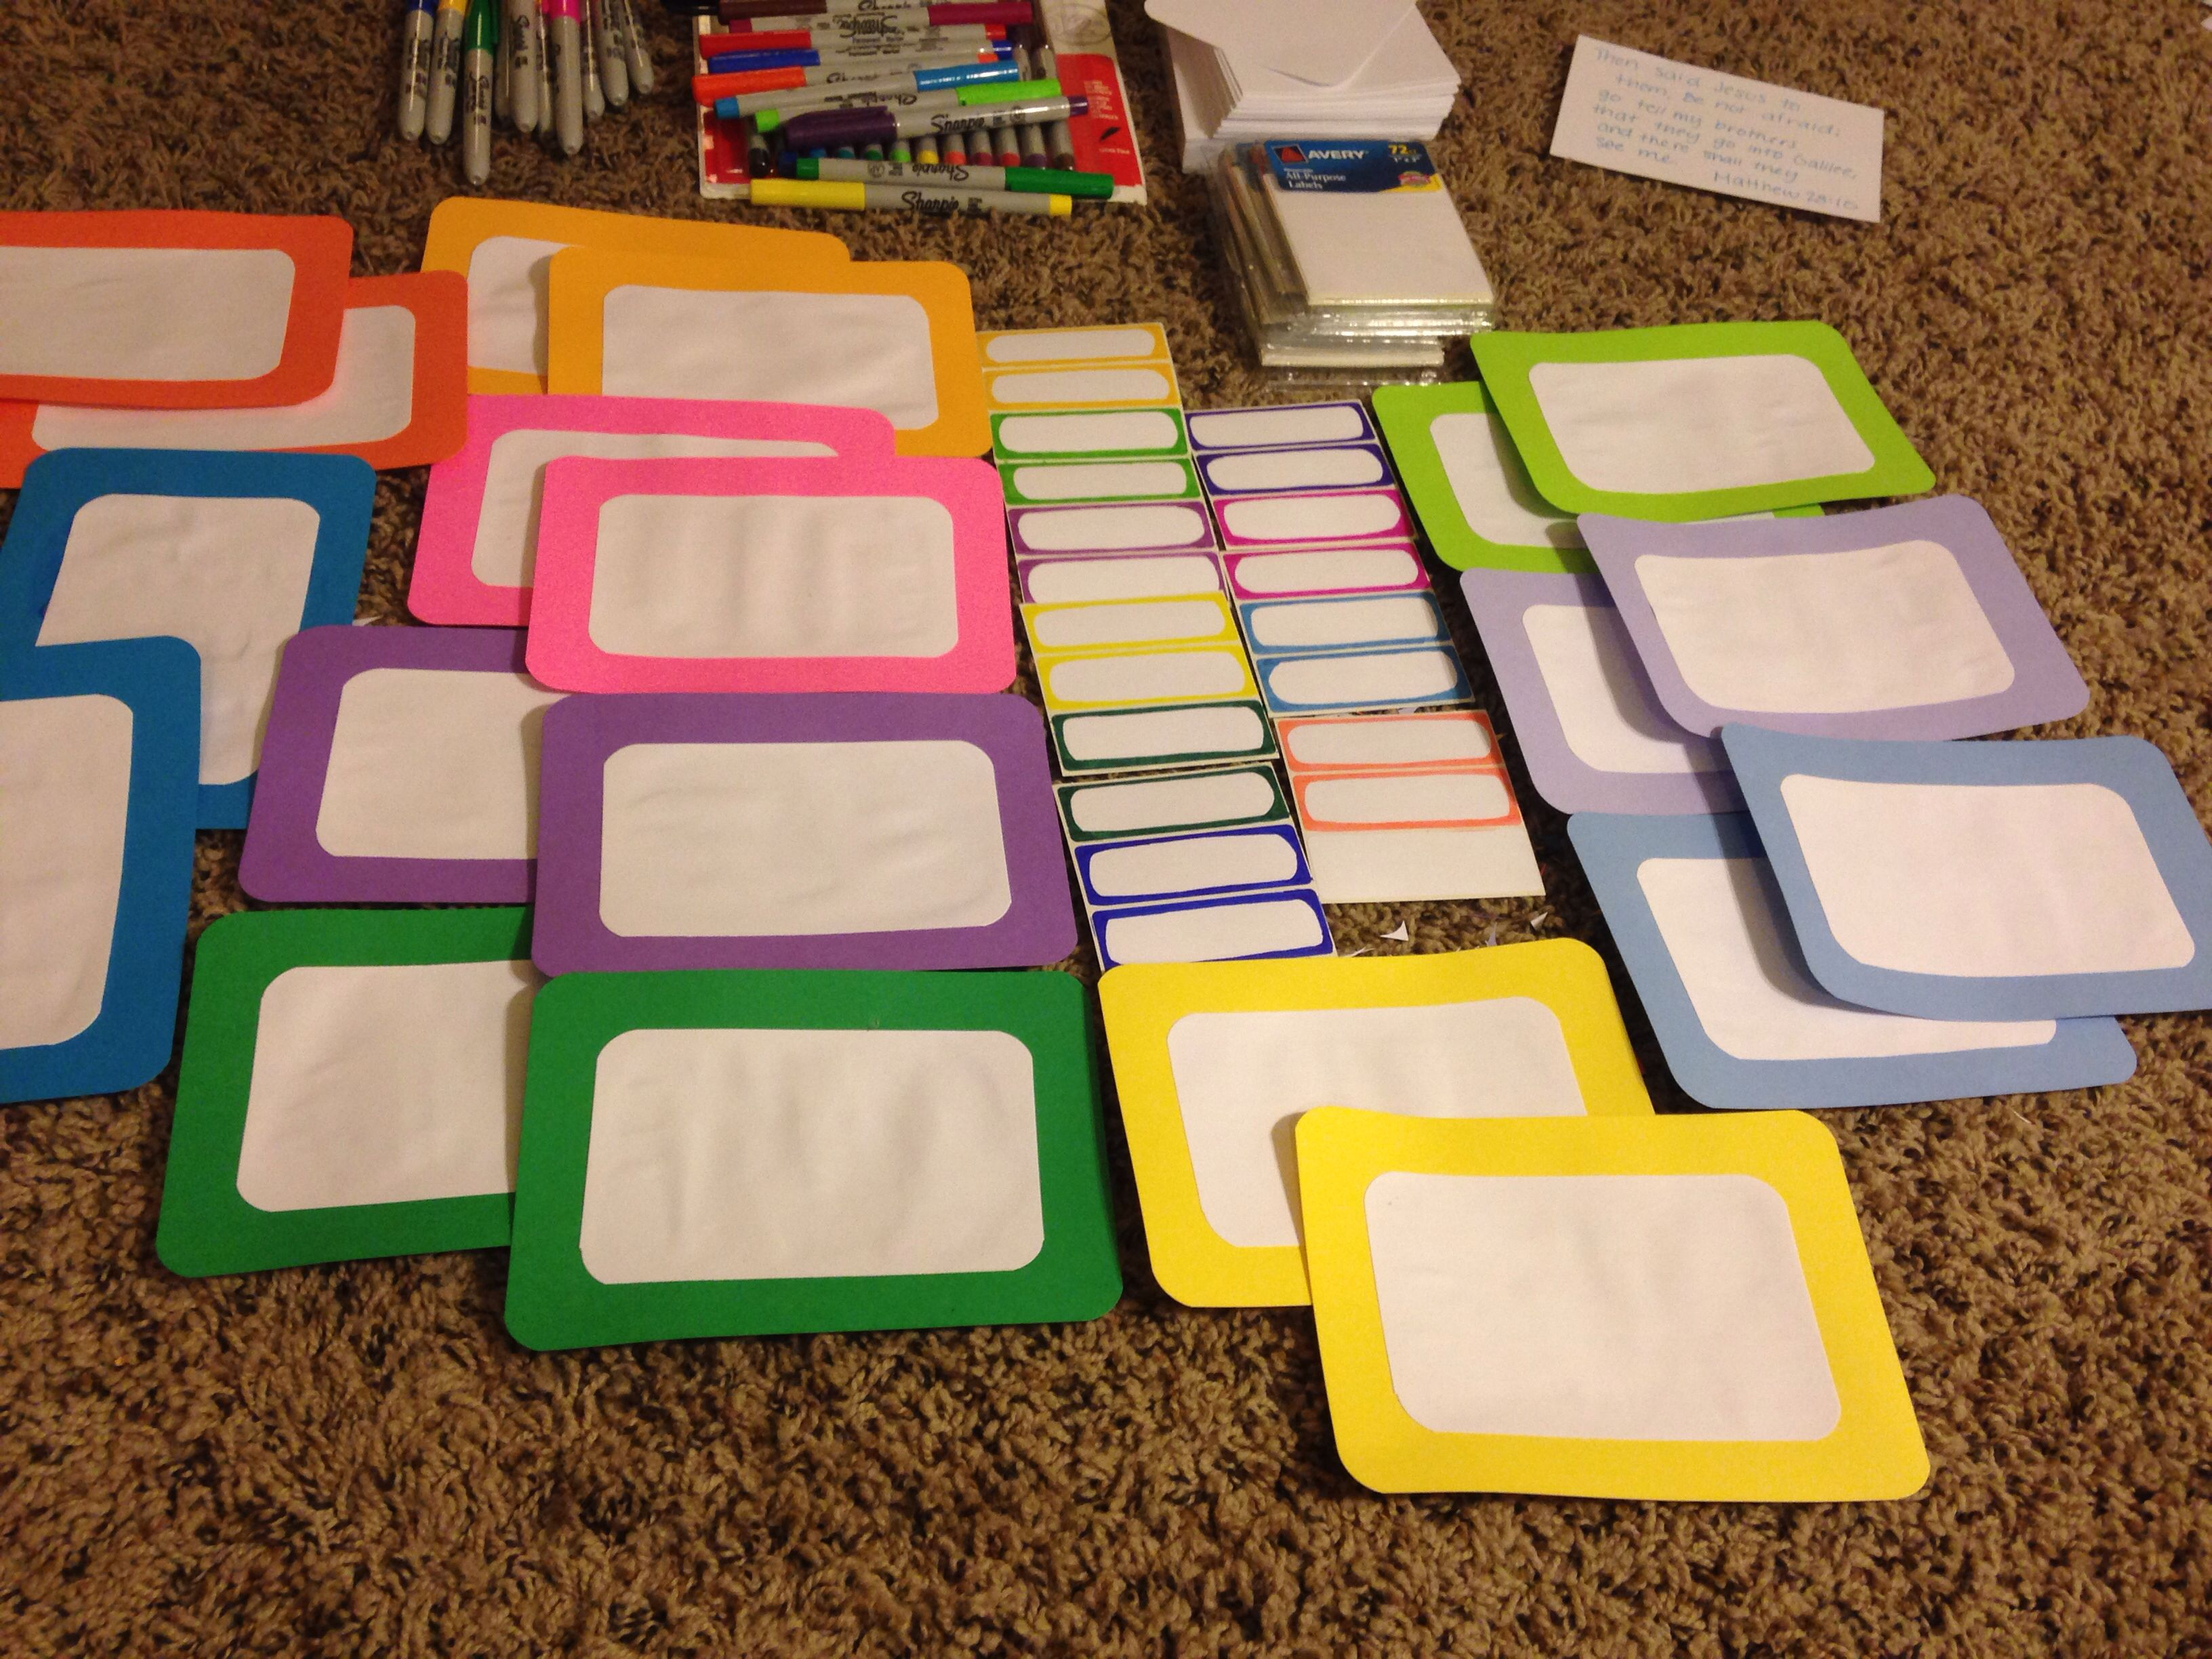 Baby cribs for daycare centers - Diy Color Coded Infant Classroom Name Labels Two Big Ones One For The Crib